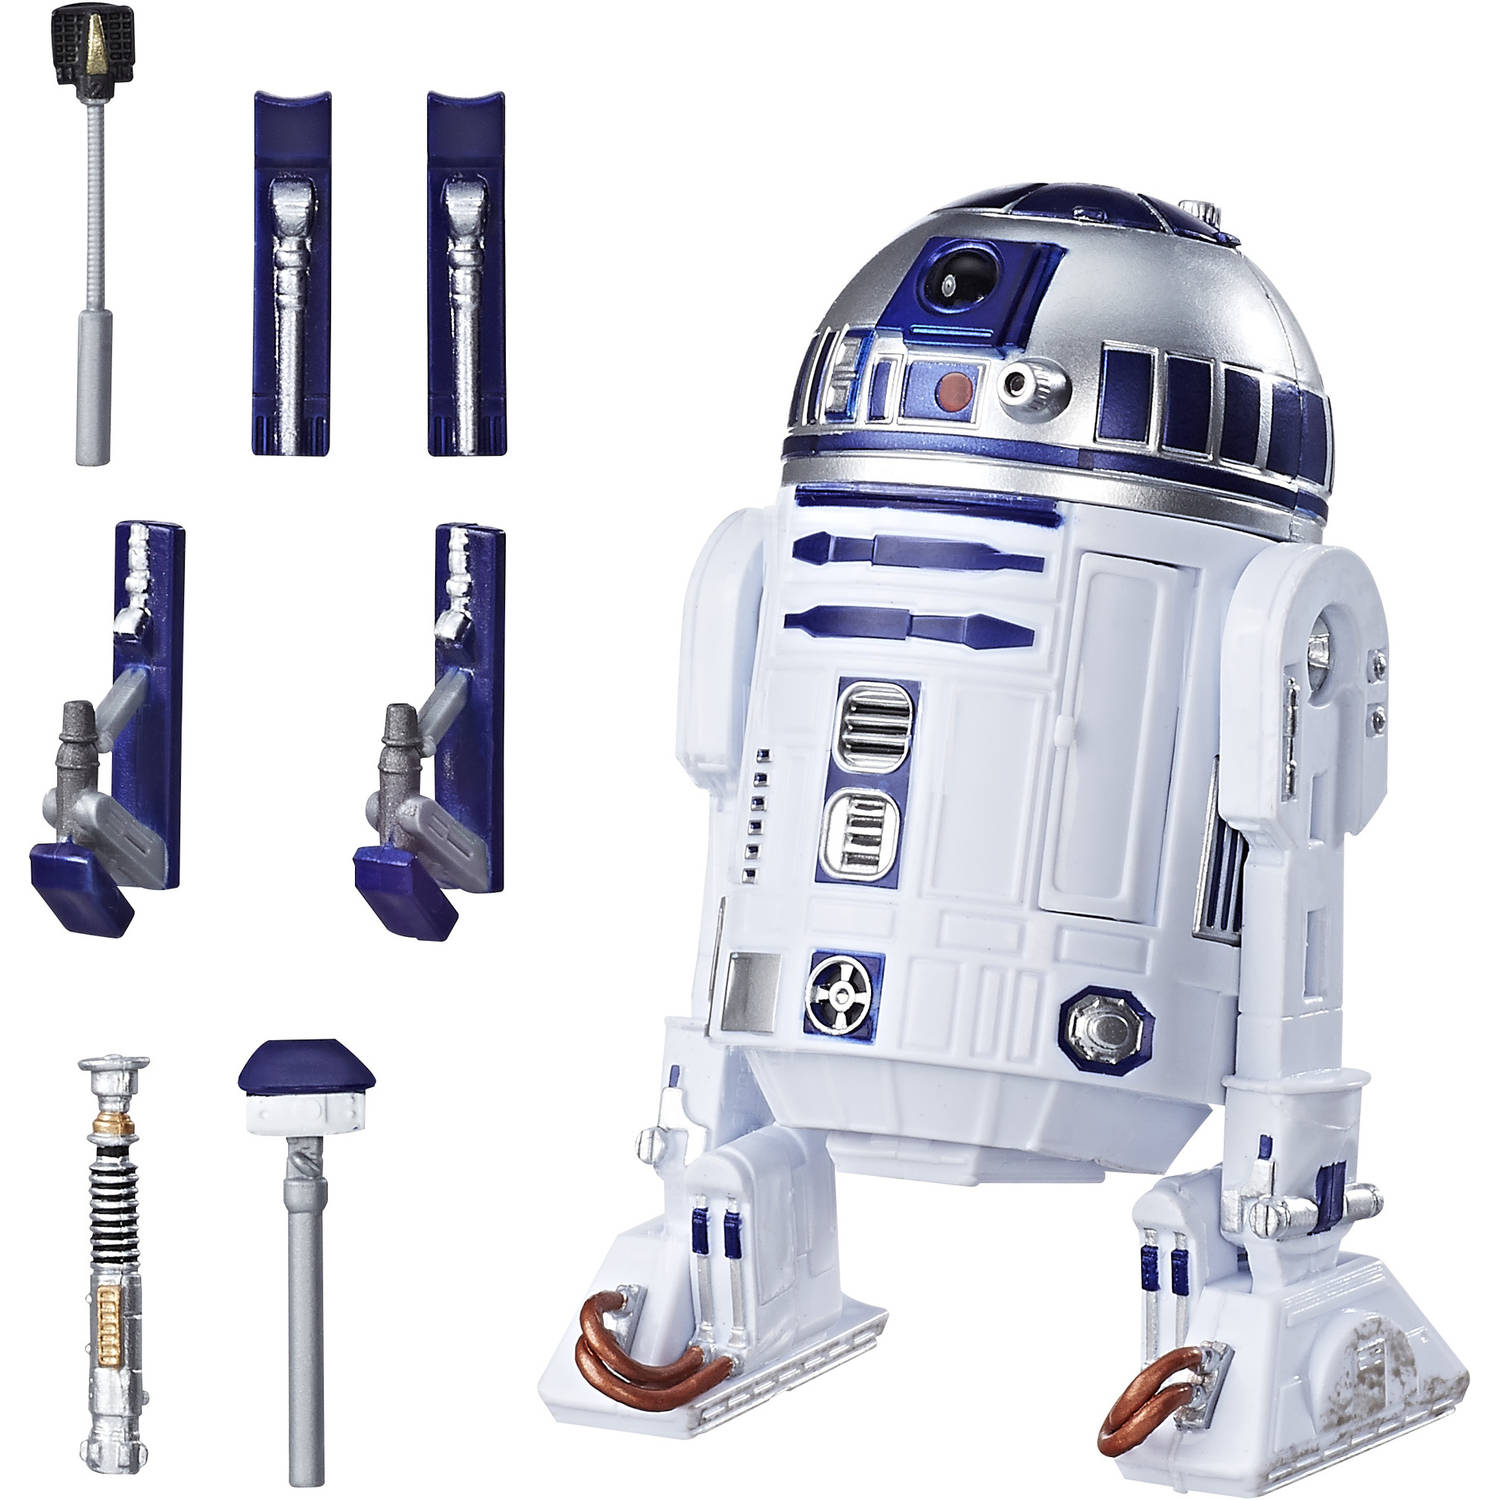 Star Wars The Black Series 40th Anniversary Artoo-Detoo (R2-D2) by Hasbro